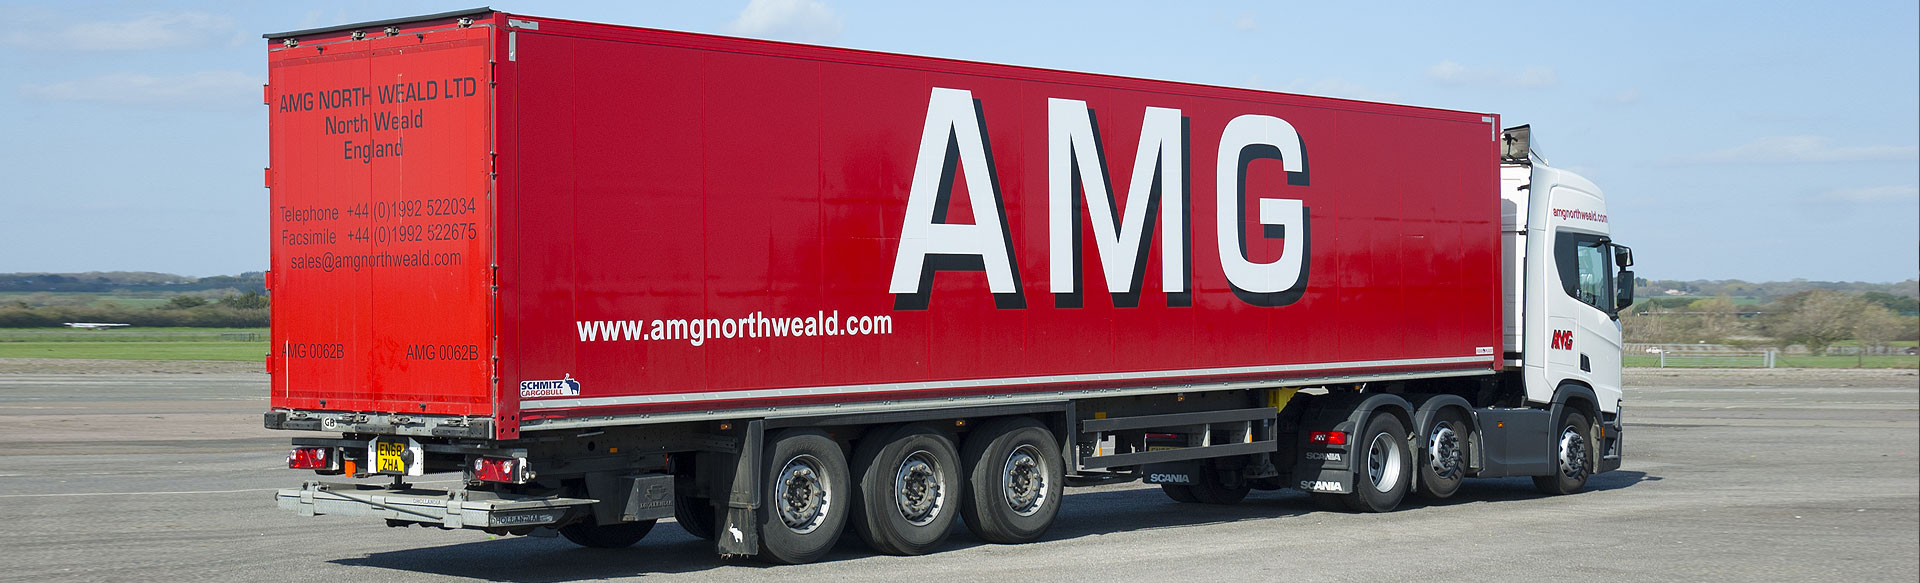 AMG Box Trailer at North Weald Airfield, Essex